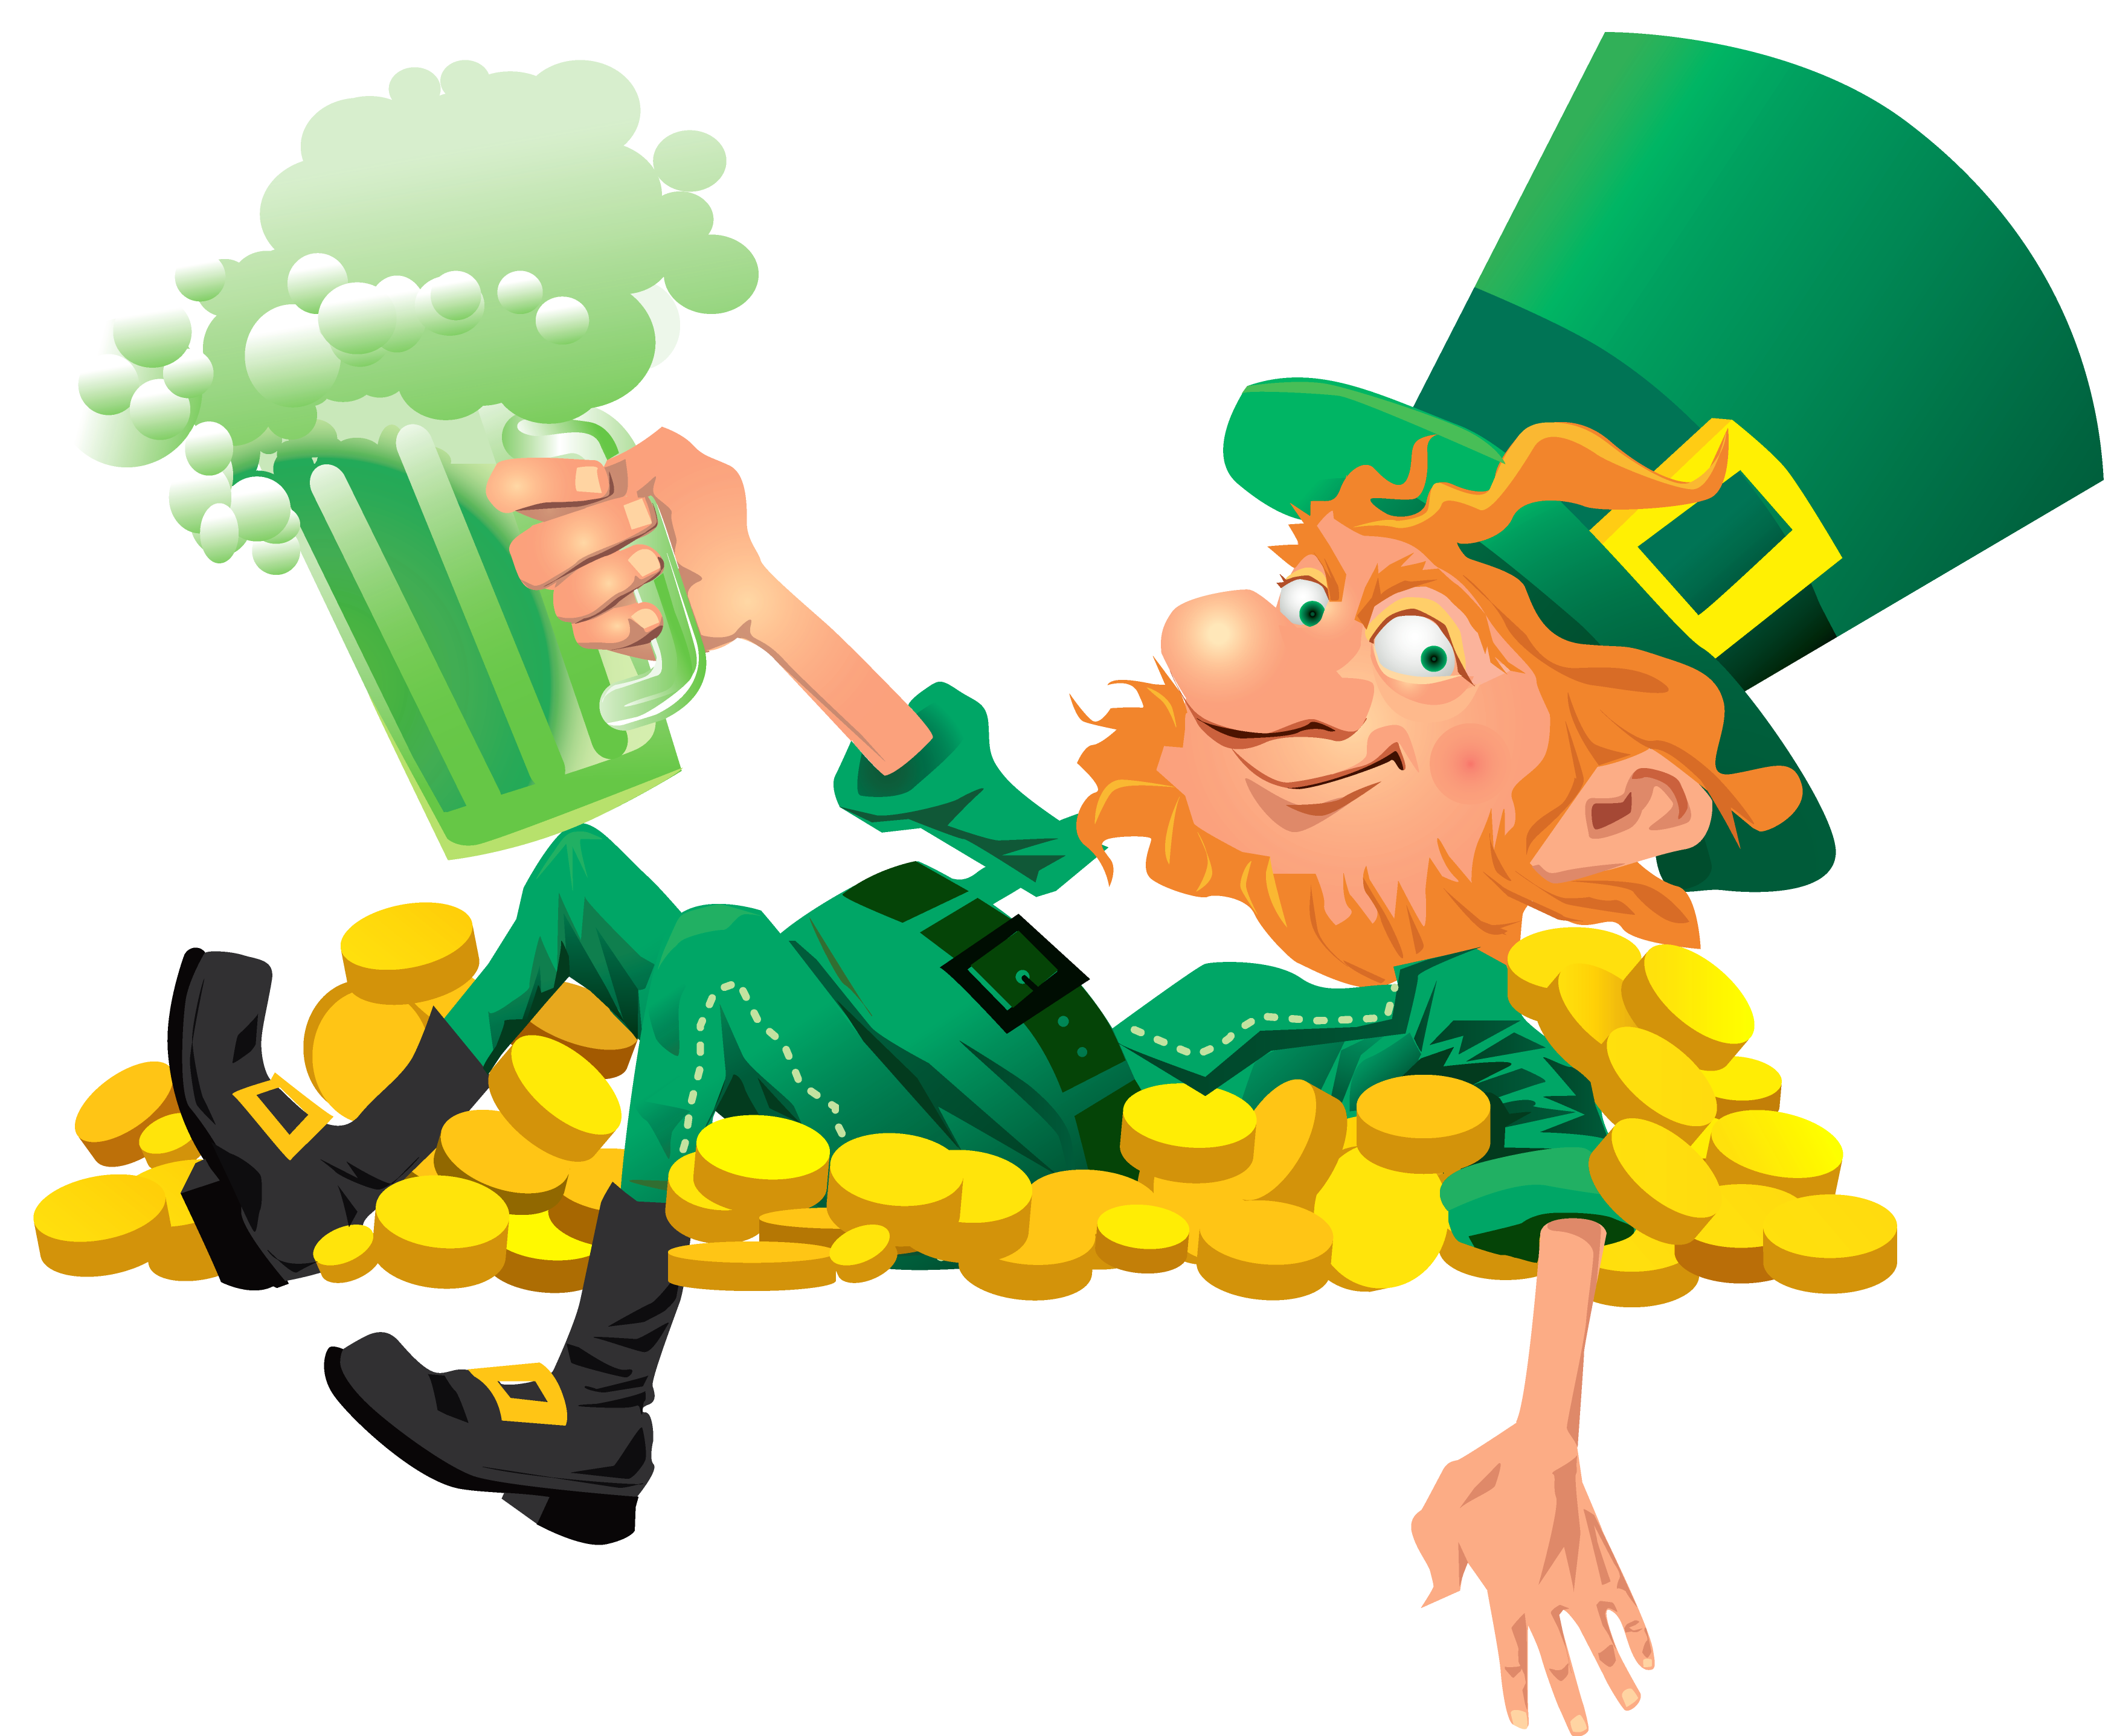 Leprechaun clip art png. With beer clipart gallery